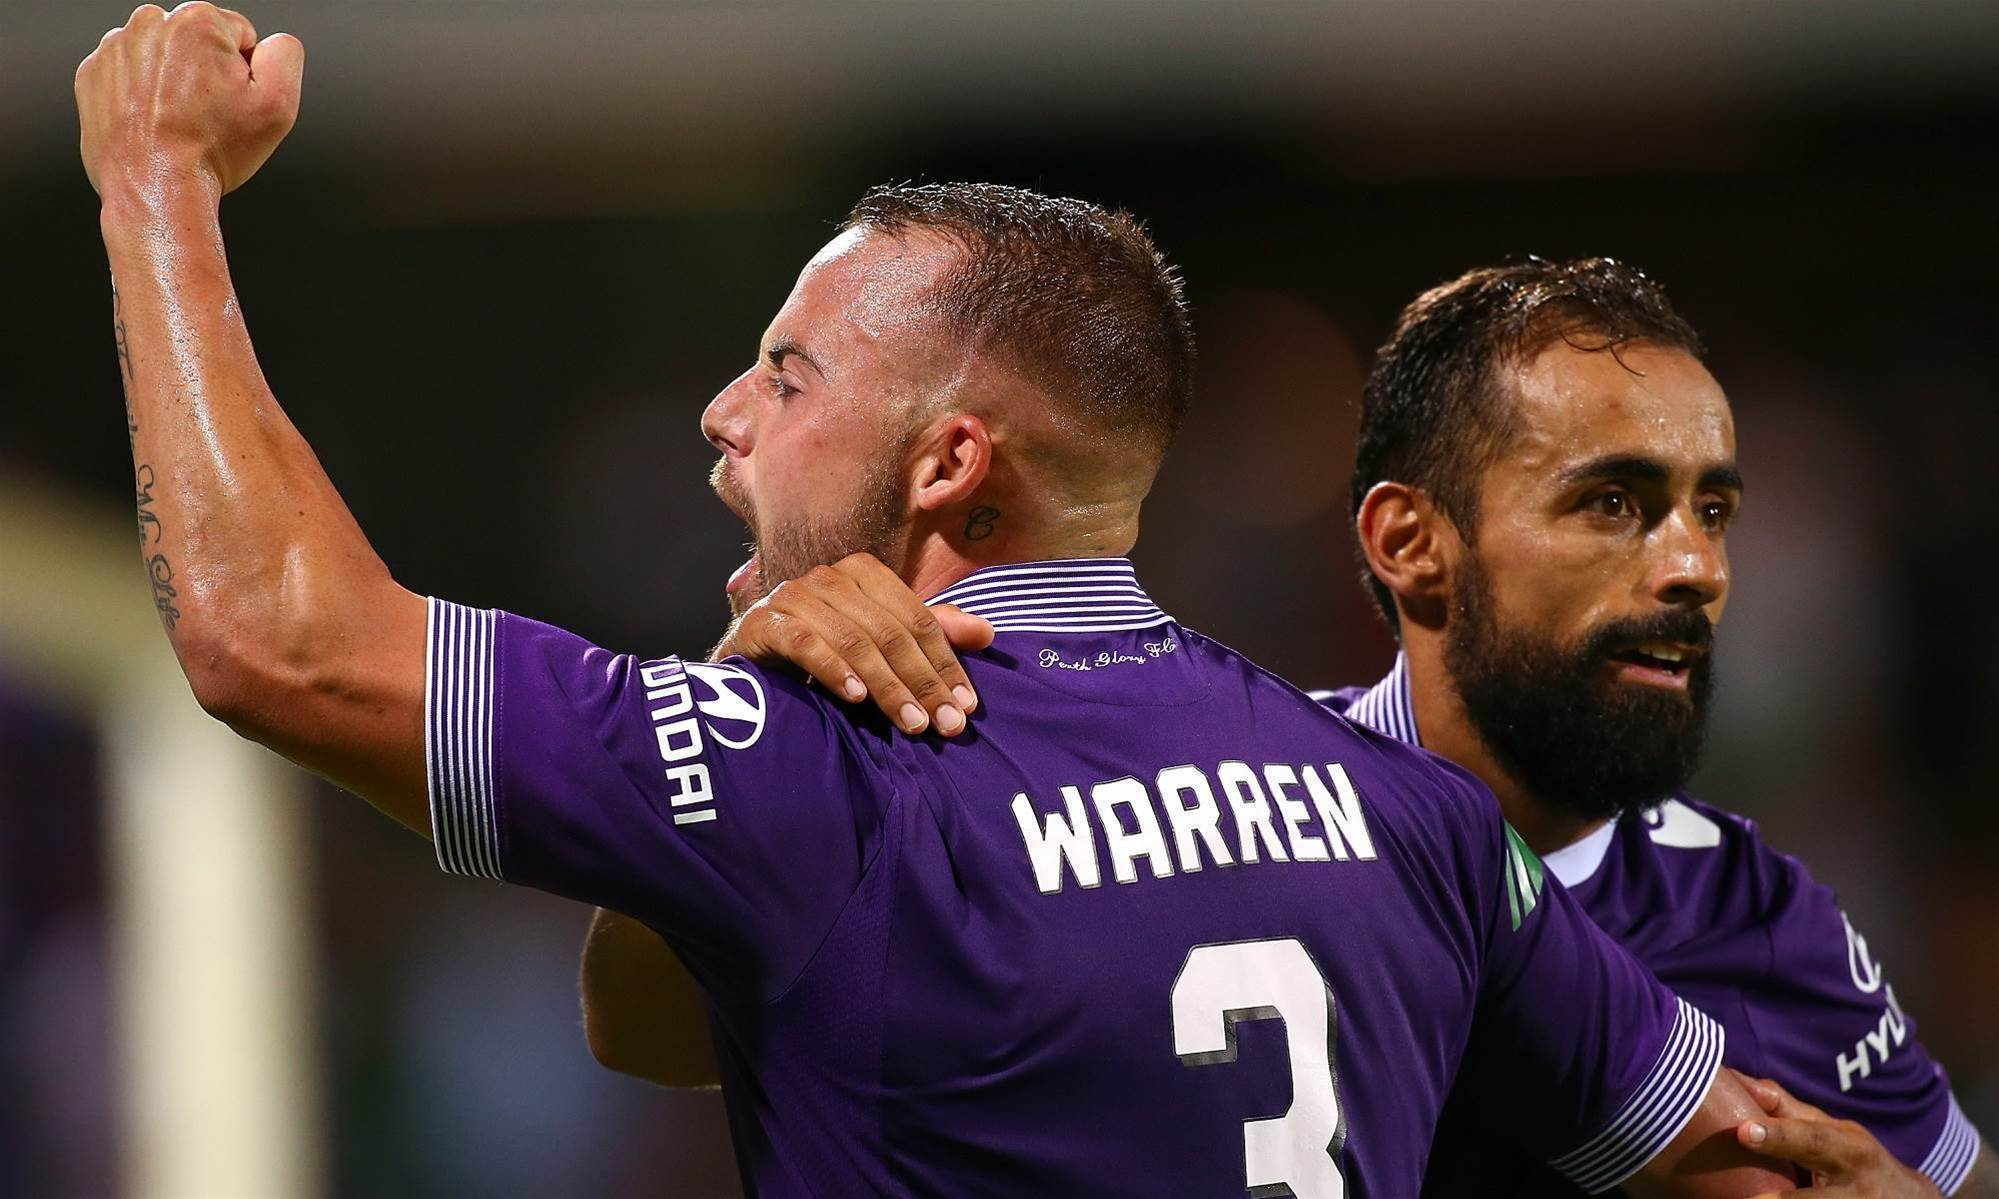 Warren pens new Glory deal